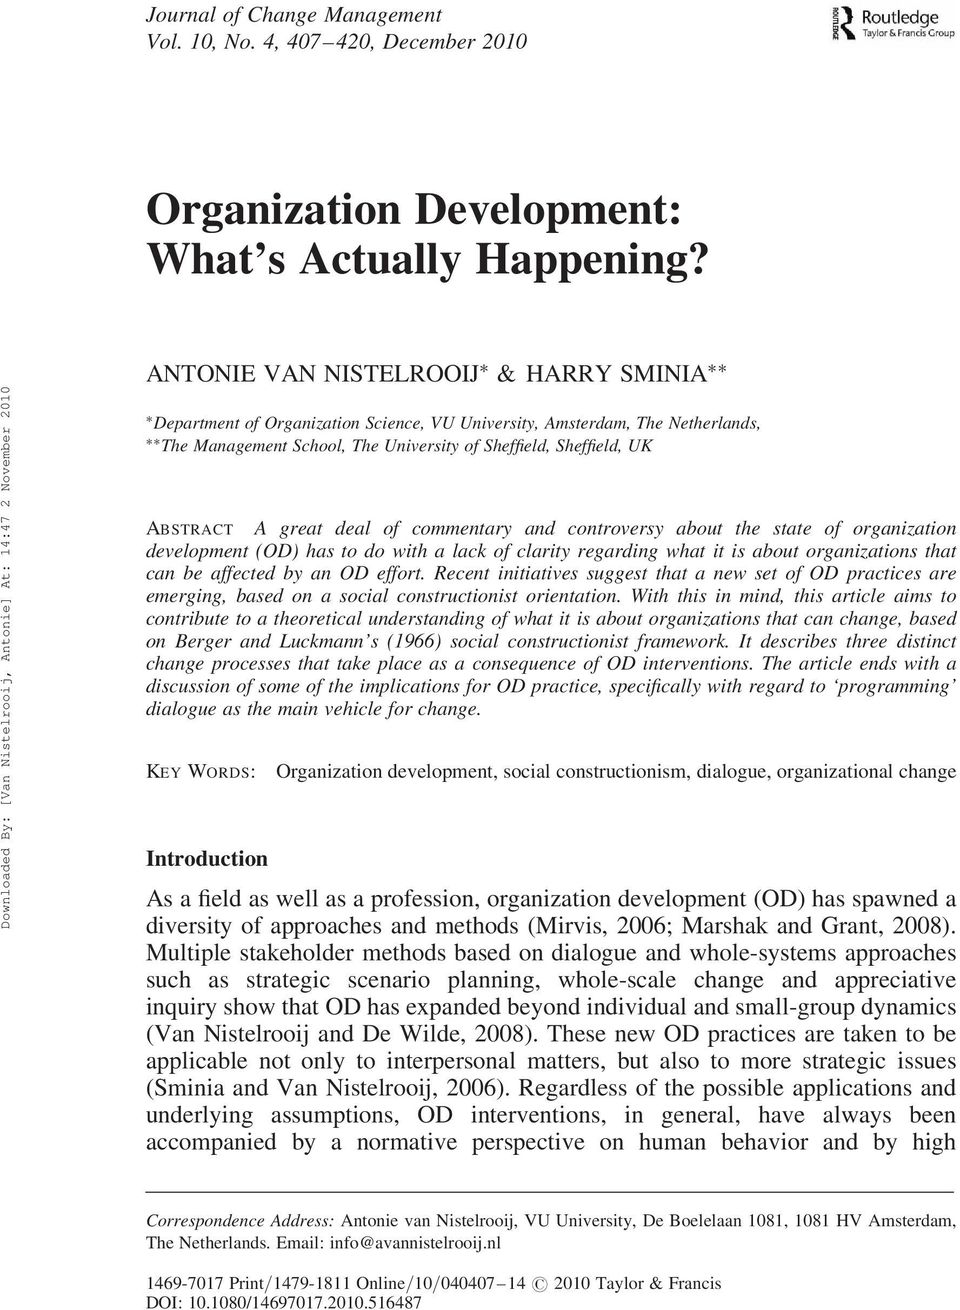 great deal of commentary and controversy about the state of organization development (OD) has to do with a lack of clarity regarding what it is about organizations that can be affected by an OD